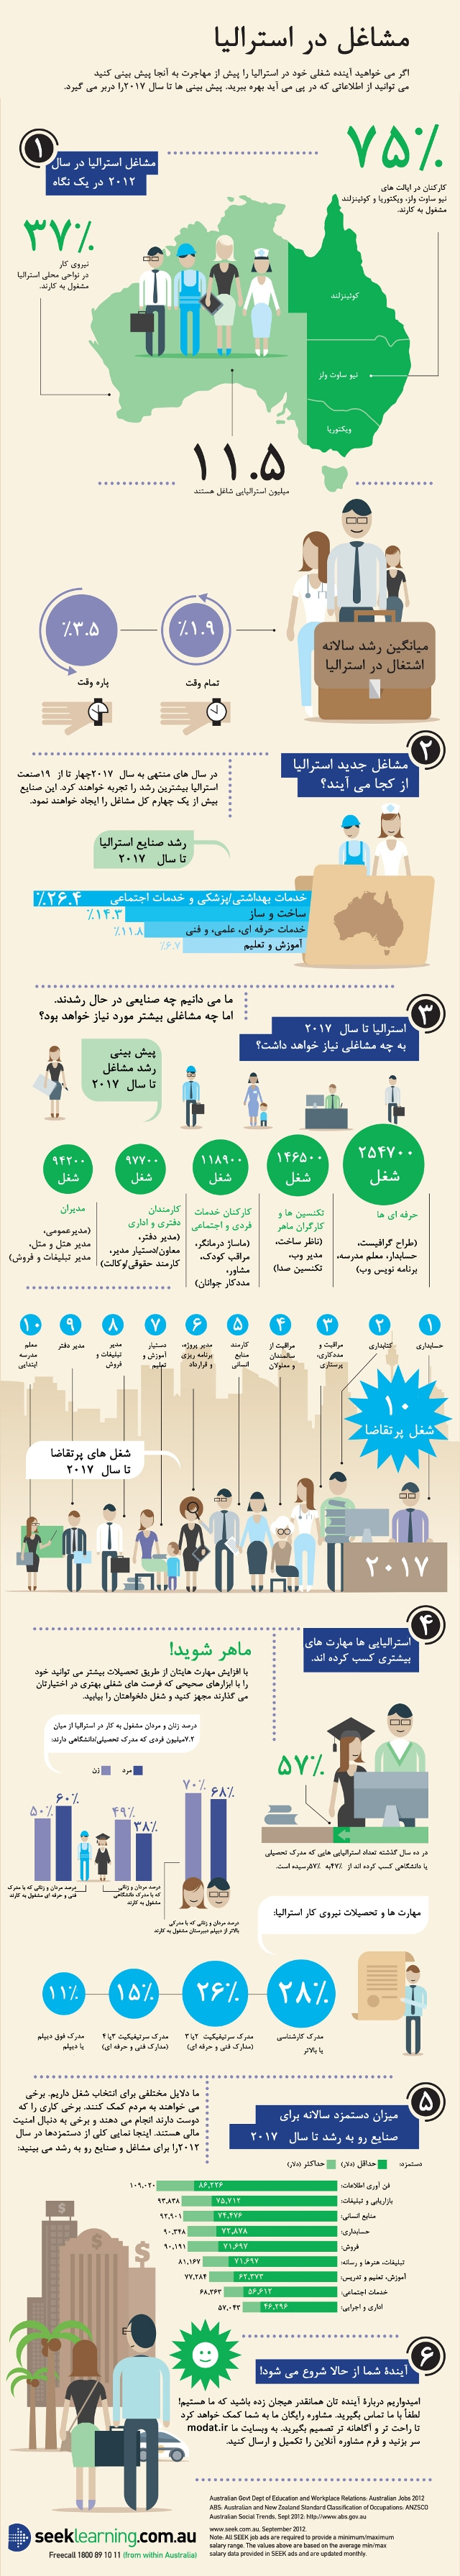 infographic_education_and_training_for_the_future (1)